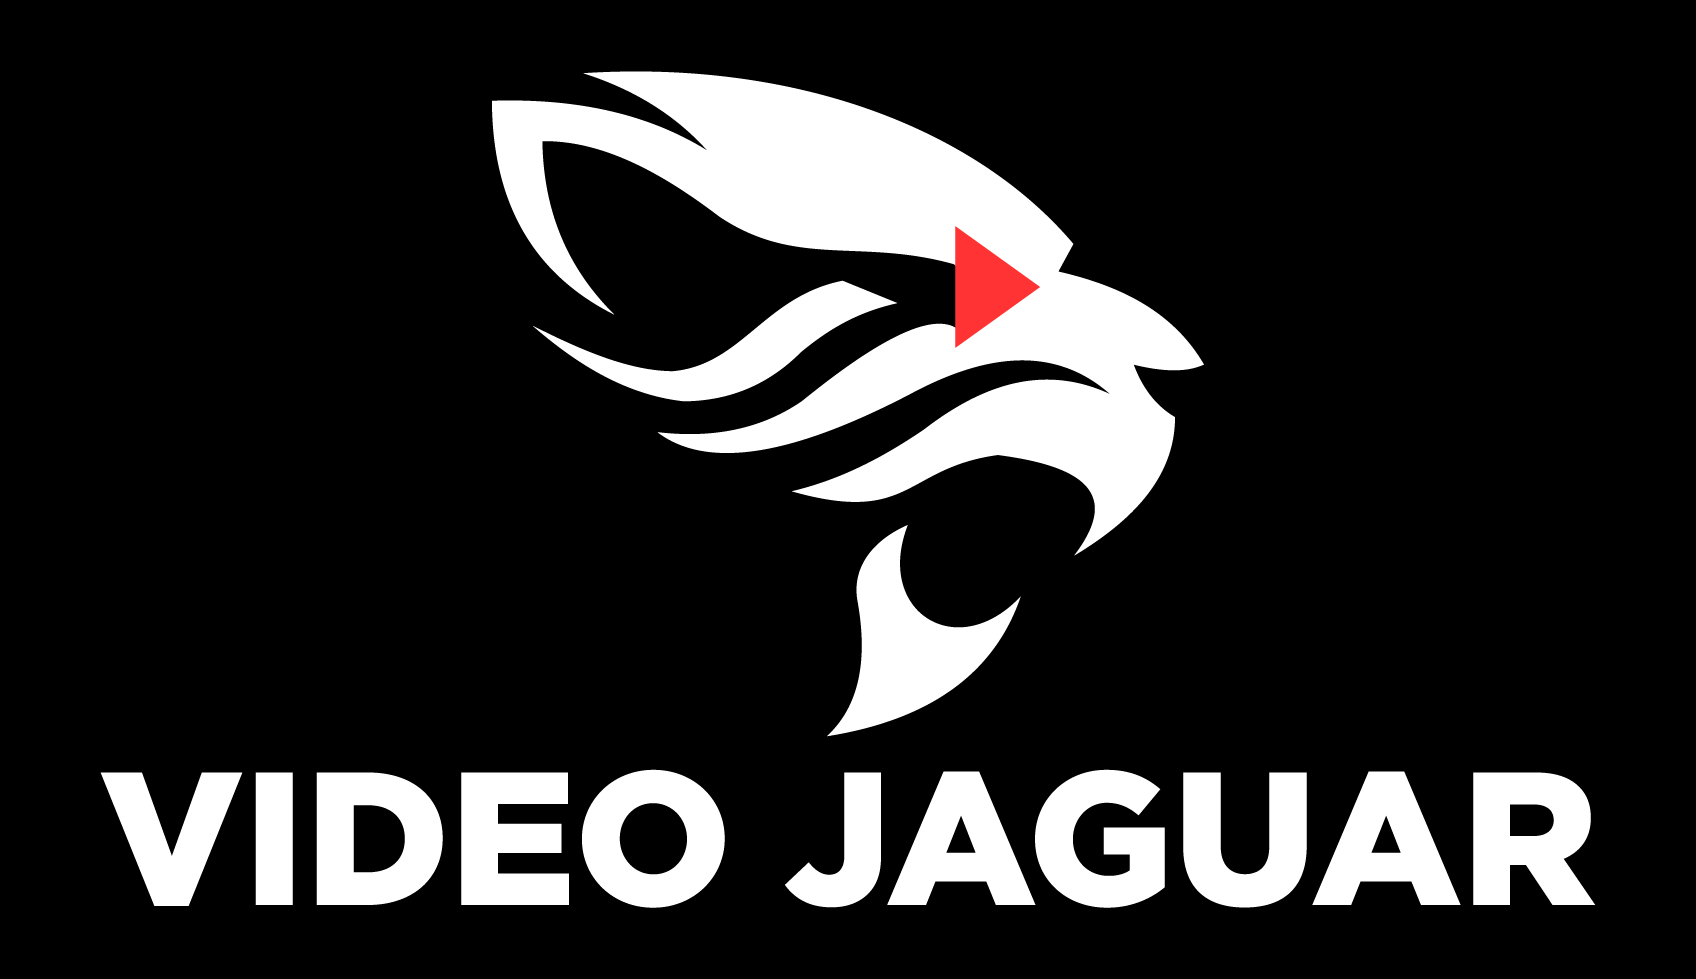 Video Jaguar